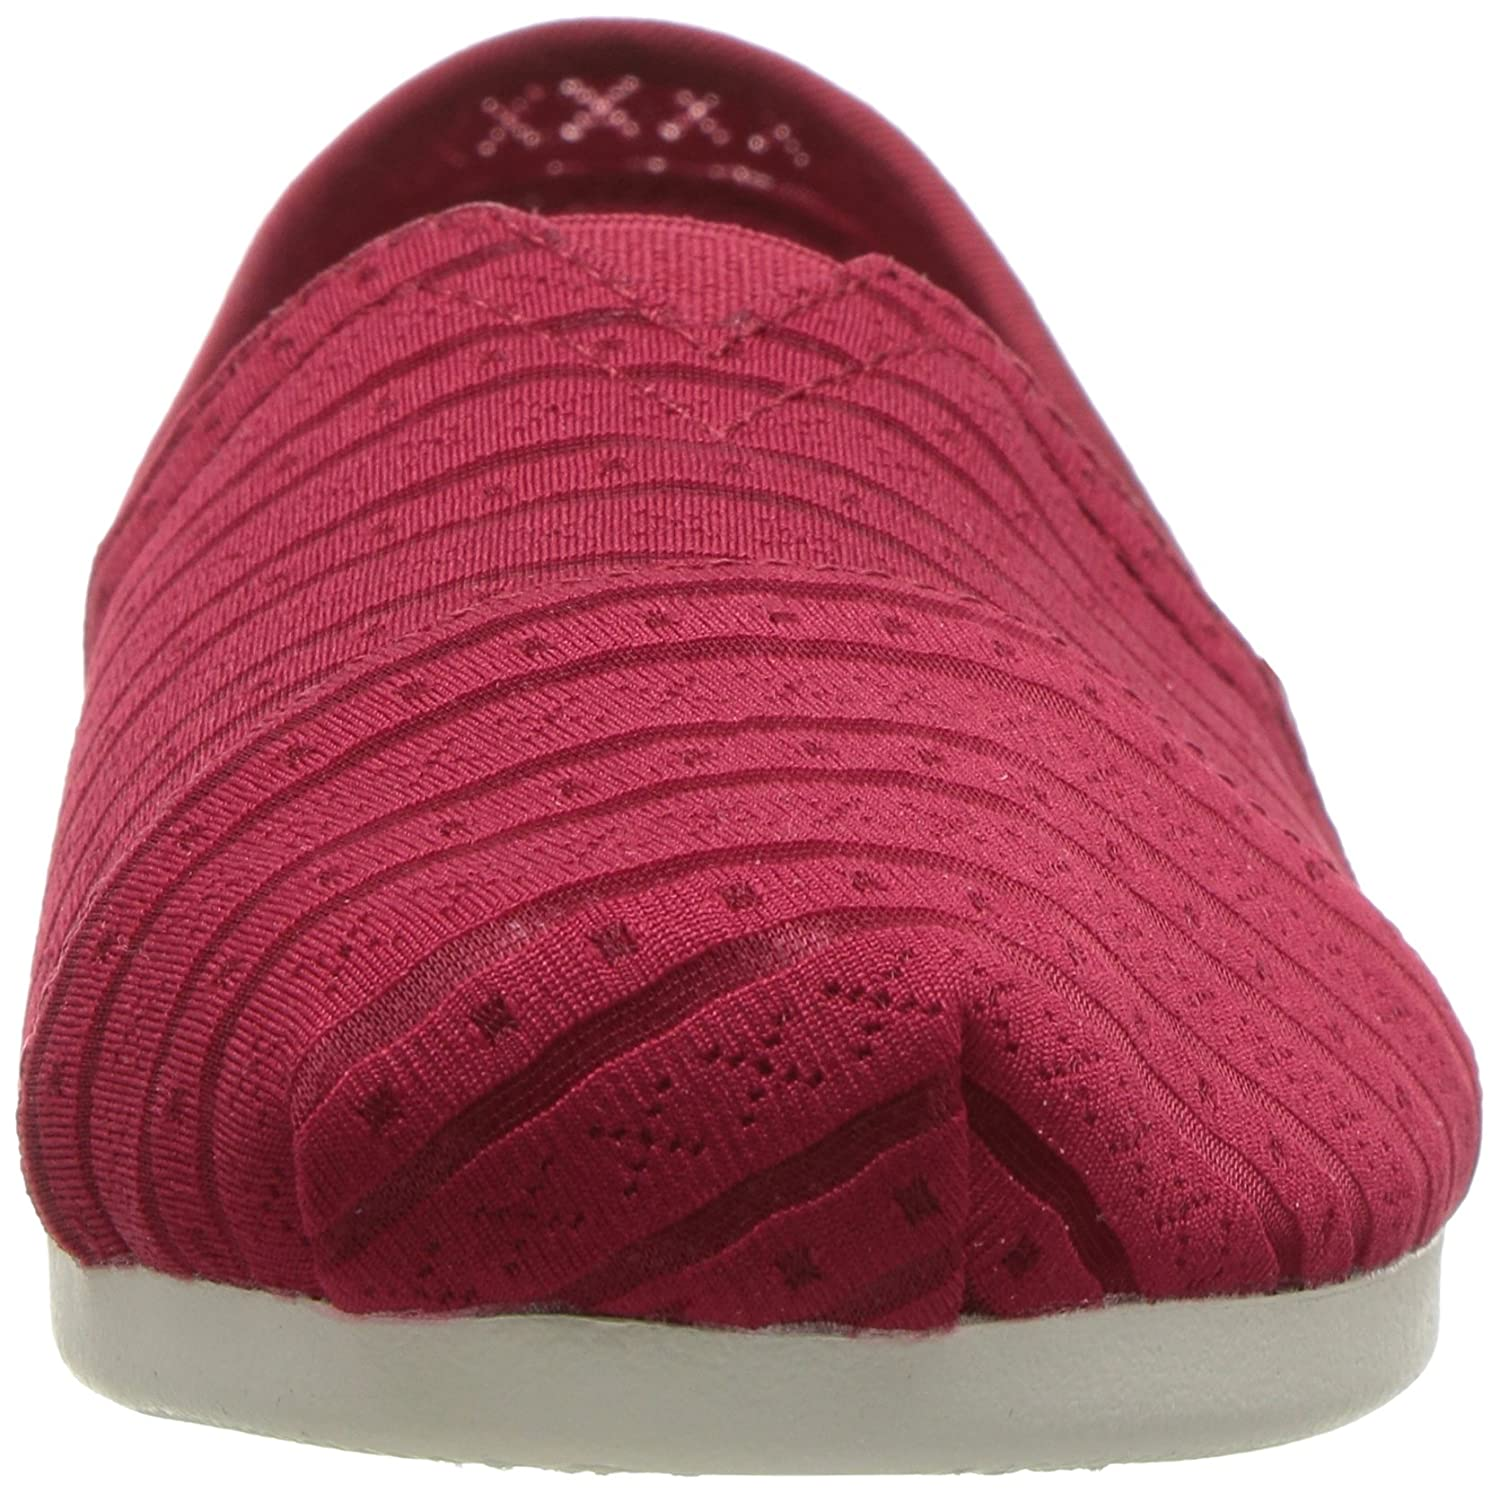 0b66ac7a938a Skechers BOBS from Women s Bobs Plush-Urban Rose Flat